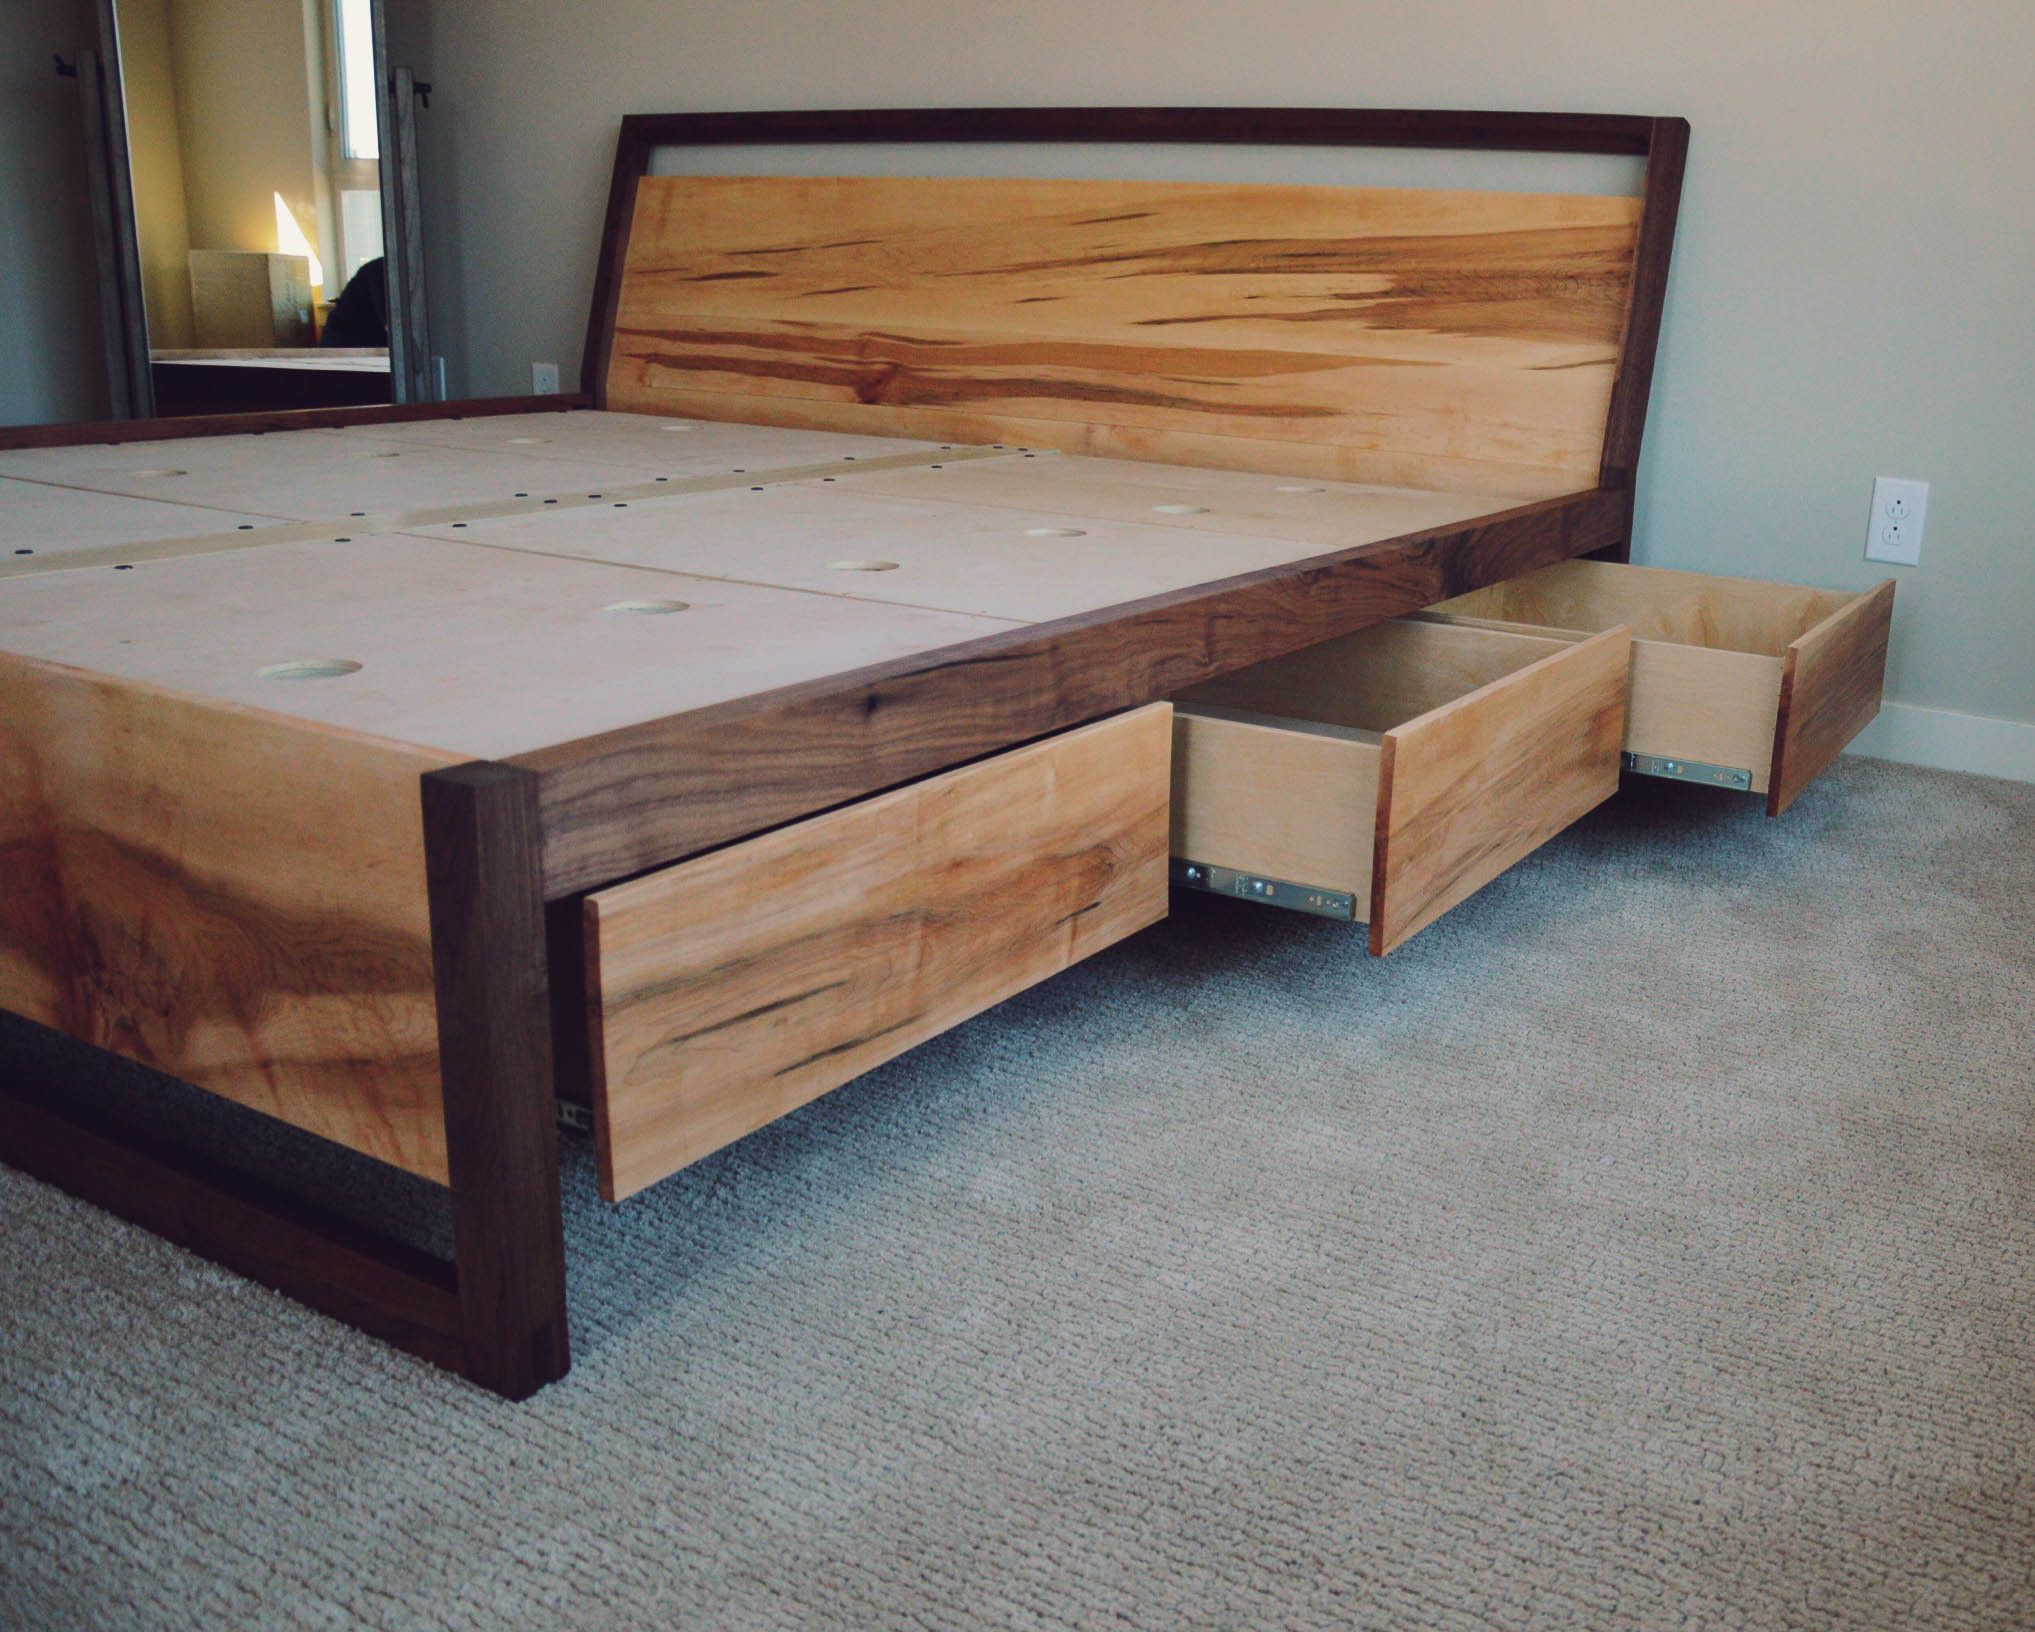 Modern Maple Walnut Platform Bed With Storage Bed With Drawers Underbed Drawers Queen Bed King Bed Headboard With Storage In 2020 Solid Wood Platform Bed Bed Frame With Storage Modern